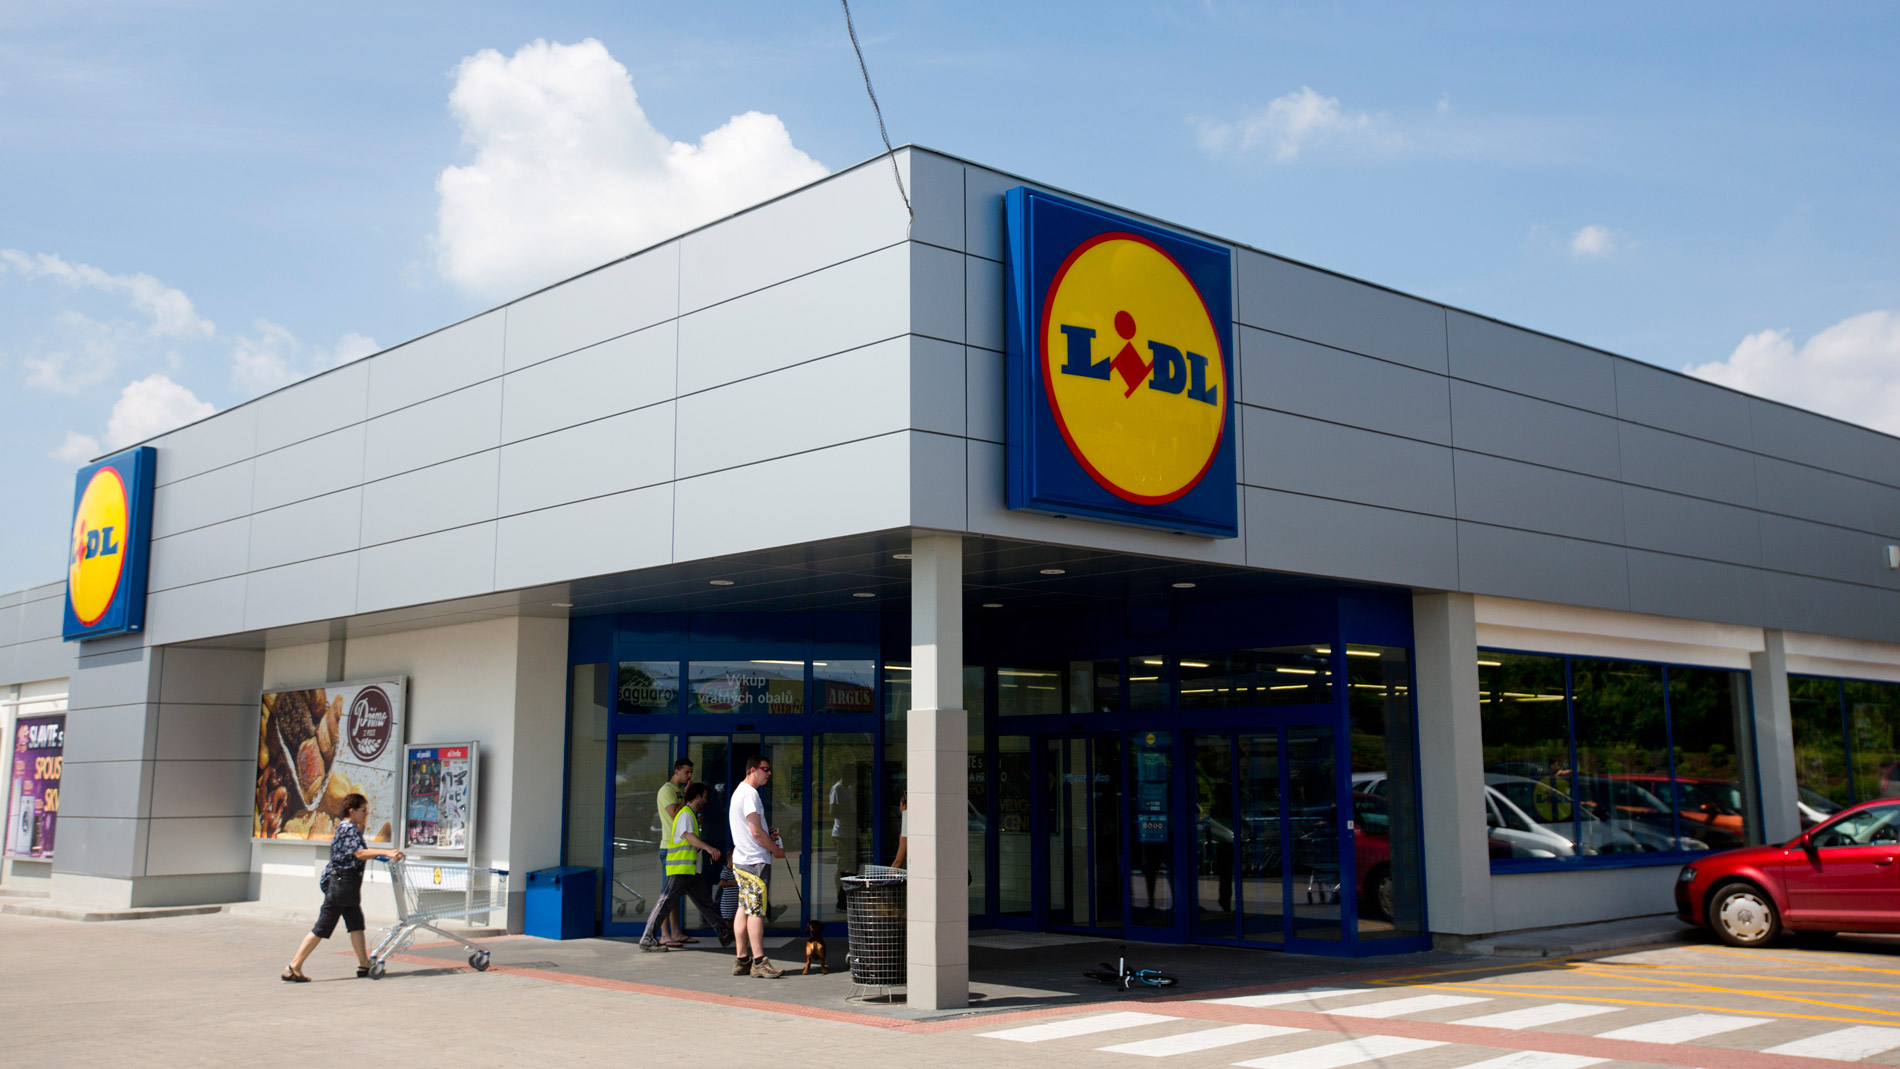 Lidl Supermarket to Open in US